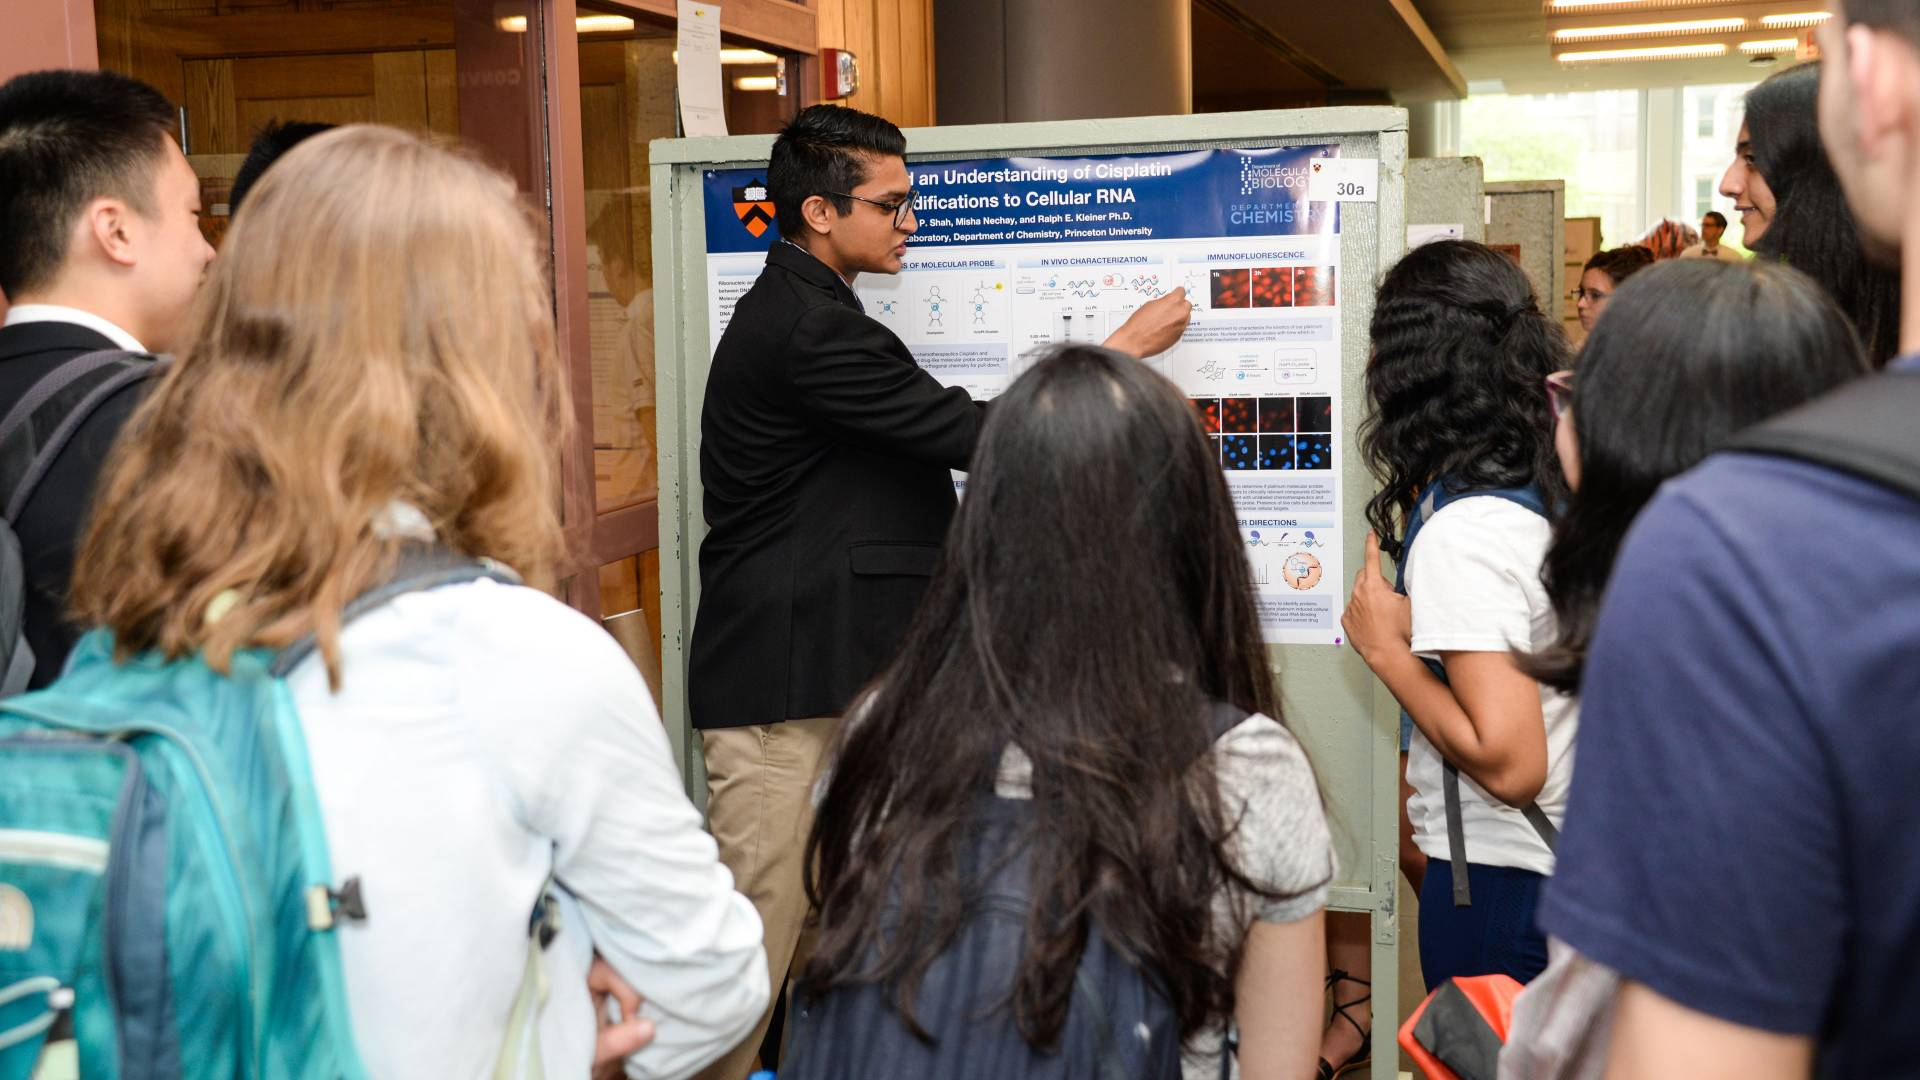 Rohan Shah presenting his poster at Princeton Research Day